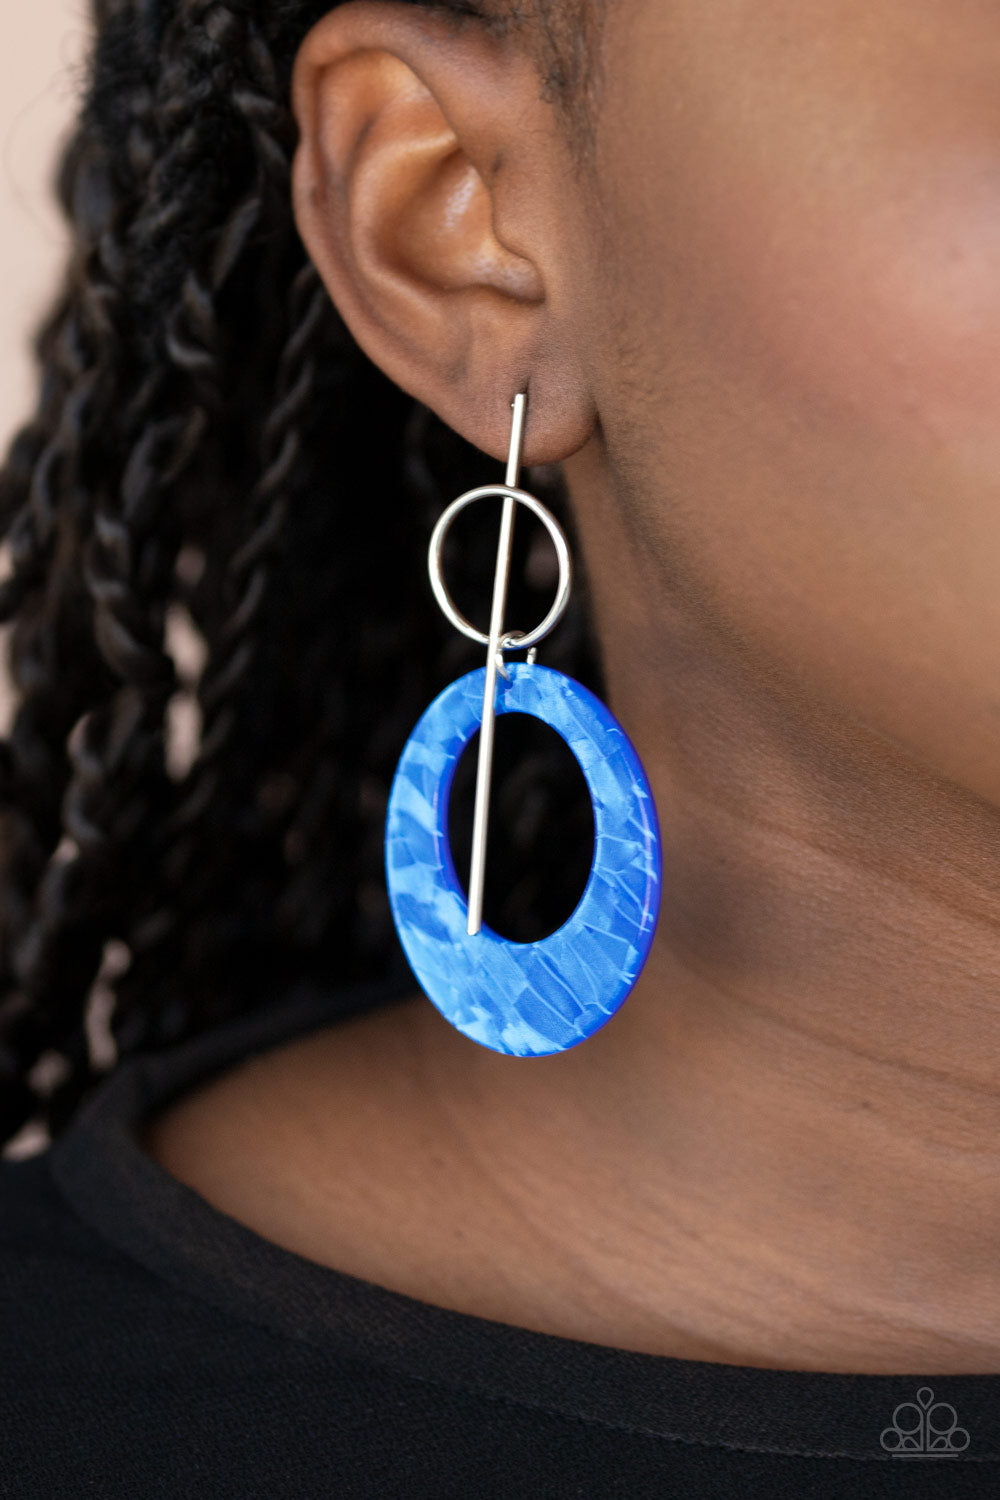 Paparazzi Jewelry & Accessories - Stellar Stylist - Blue Earrings. Bling By Titia Boutique